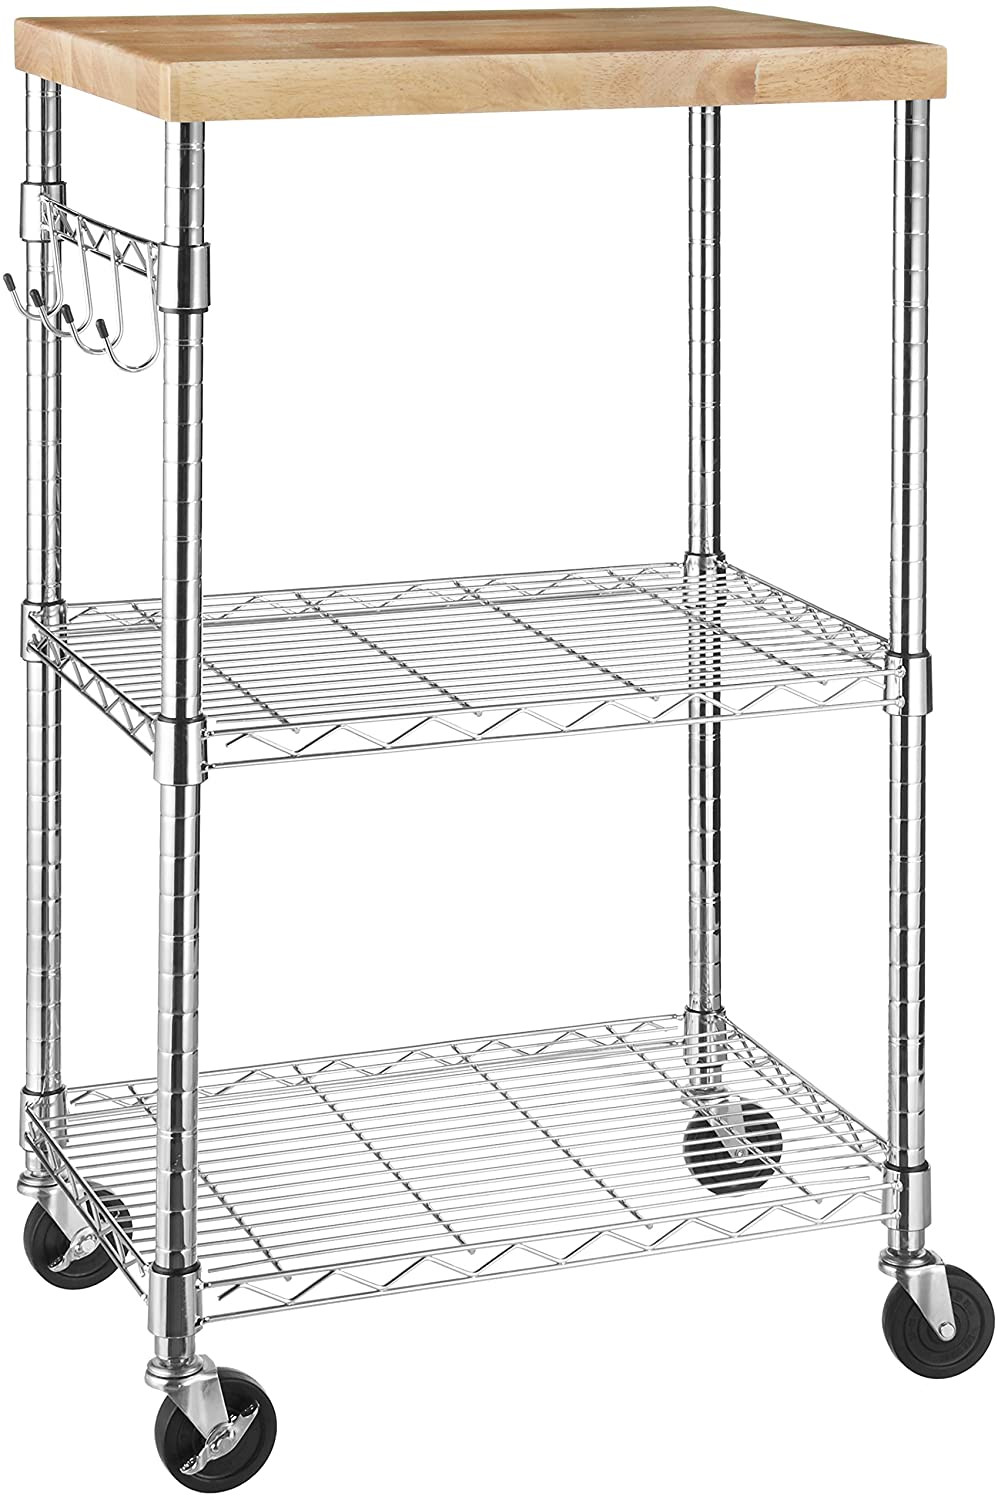 AmazonBasics Rolling Microwave Kitchen Utility Cart on Wheels, Storage Rack, Wood/Chrome